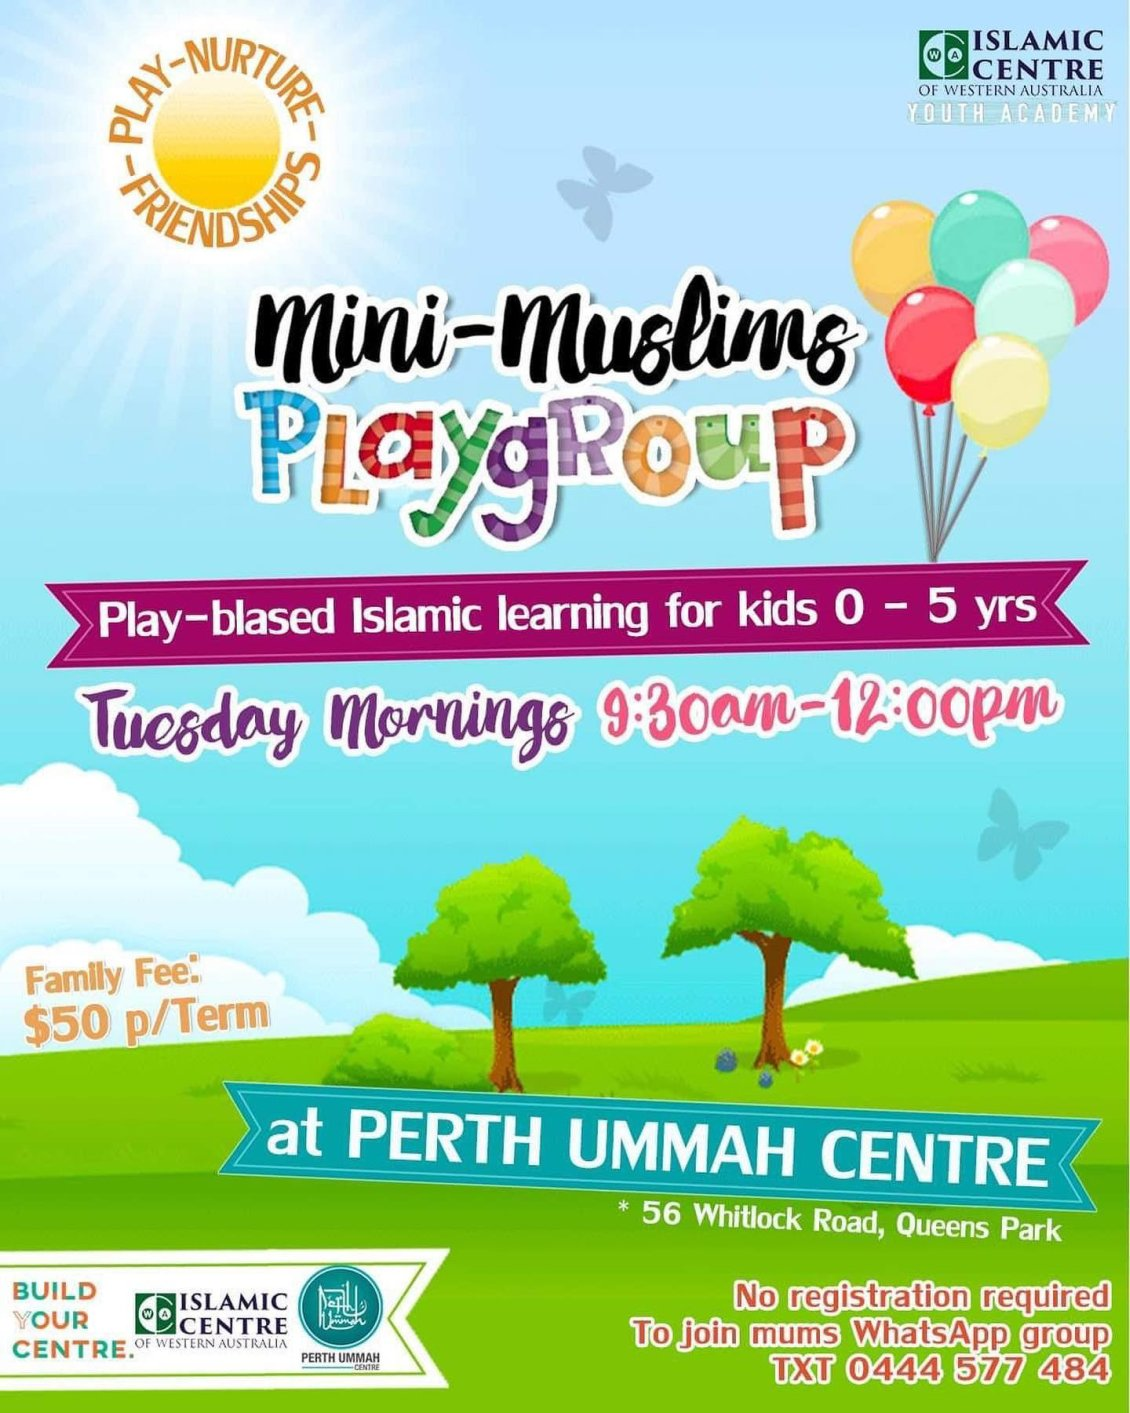 Mini Muslims Playgroup